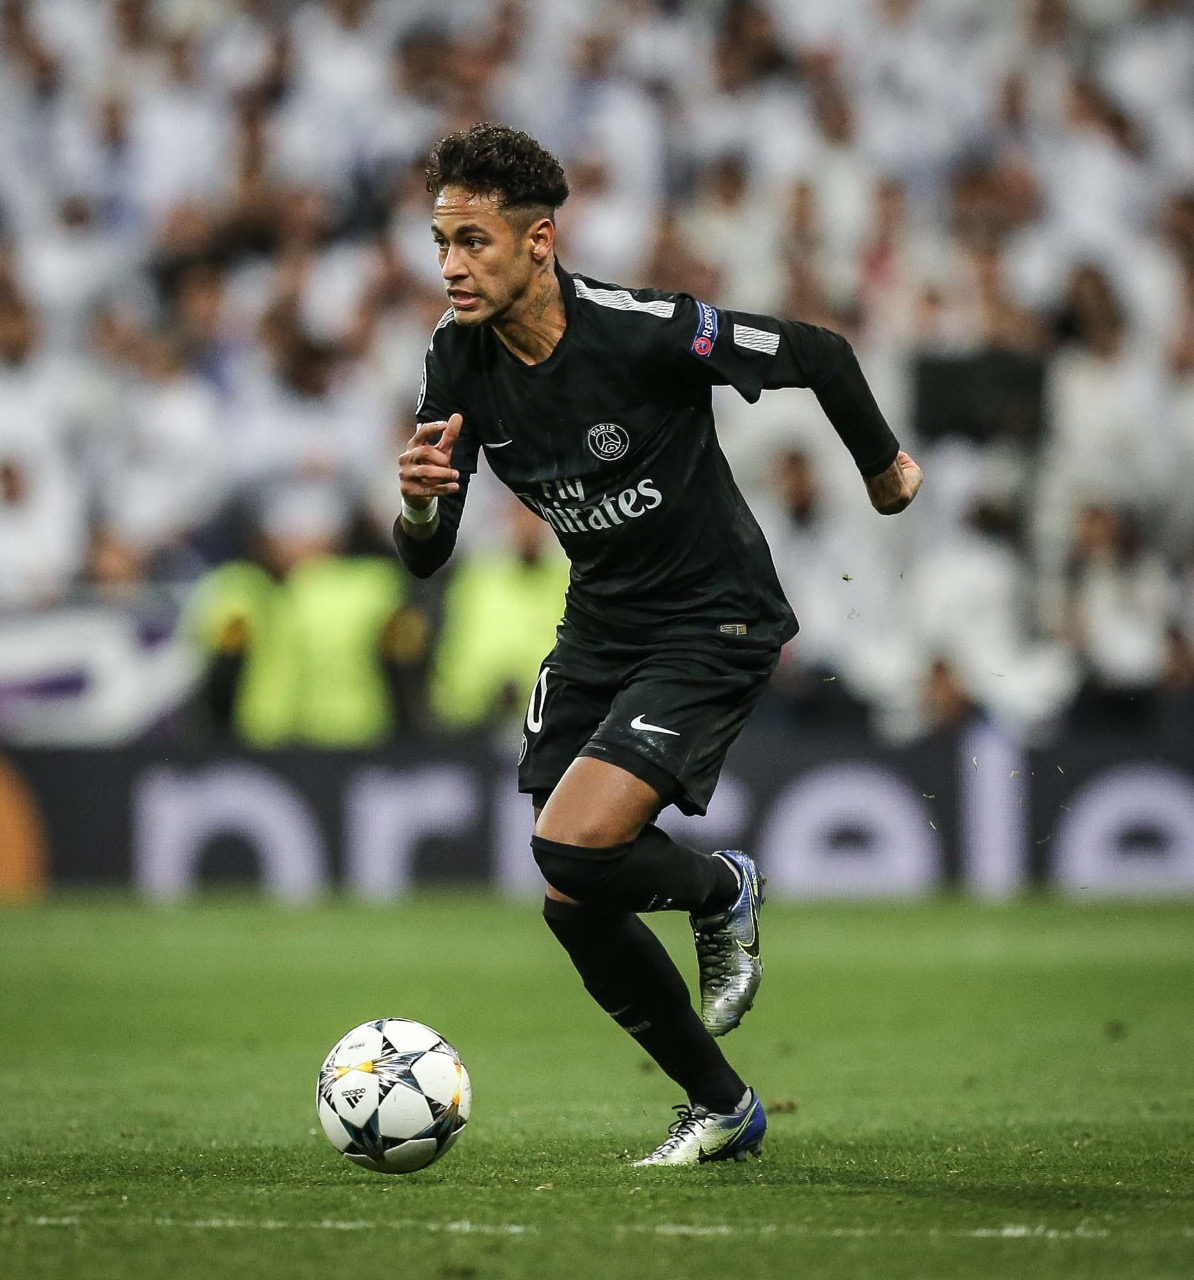 PSG loses to Real Madrid in the first round of the Champions League s last  16 9e6ce62e3e081